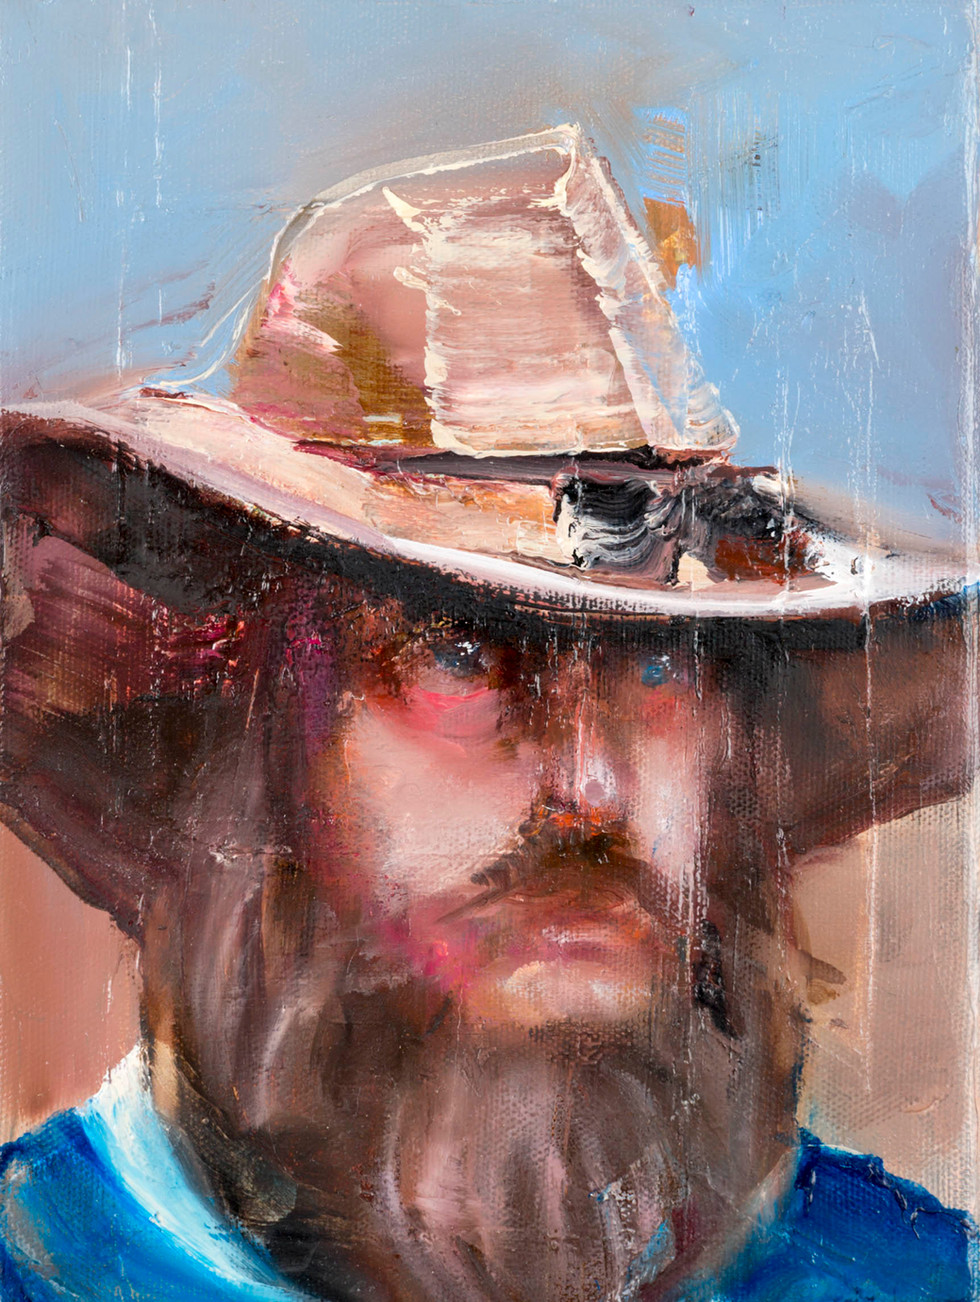 cowboy, 30 x 20 cm, oil on linen, 2016